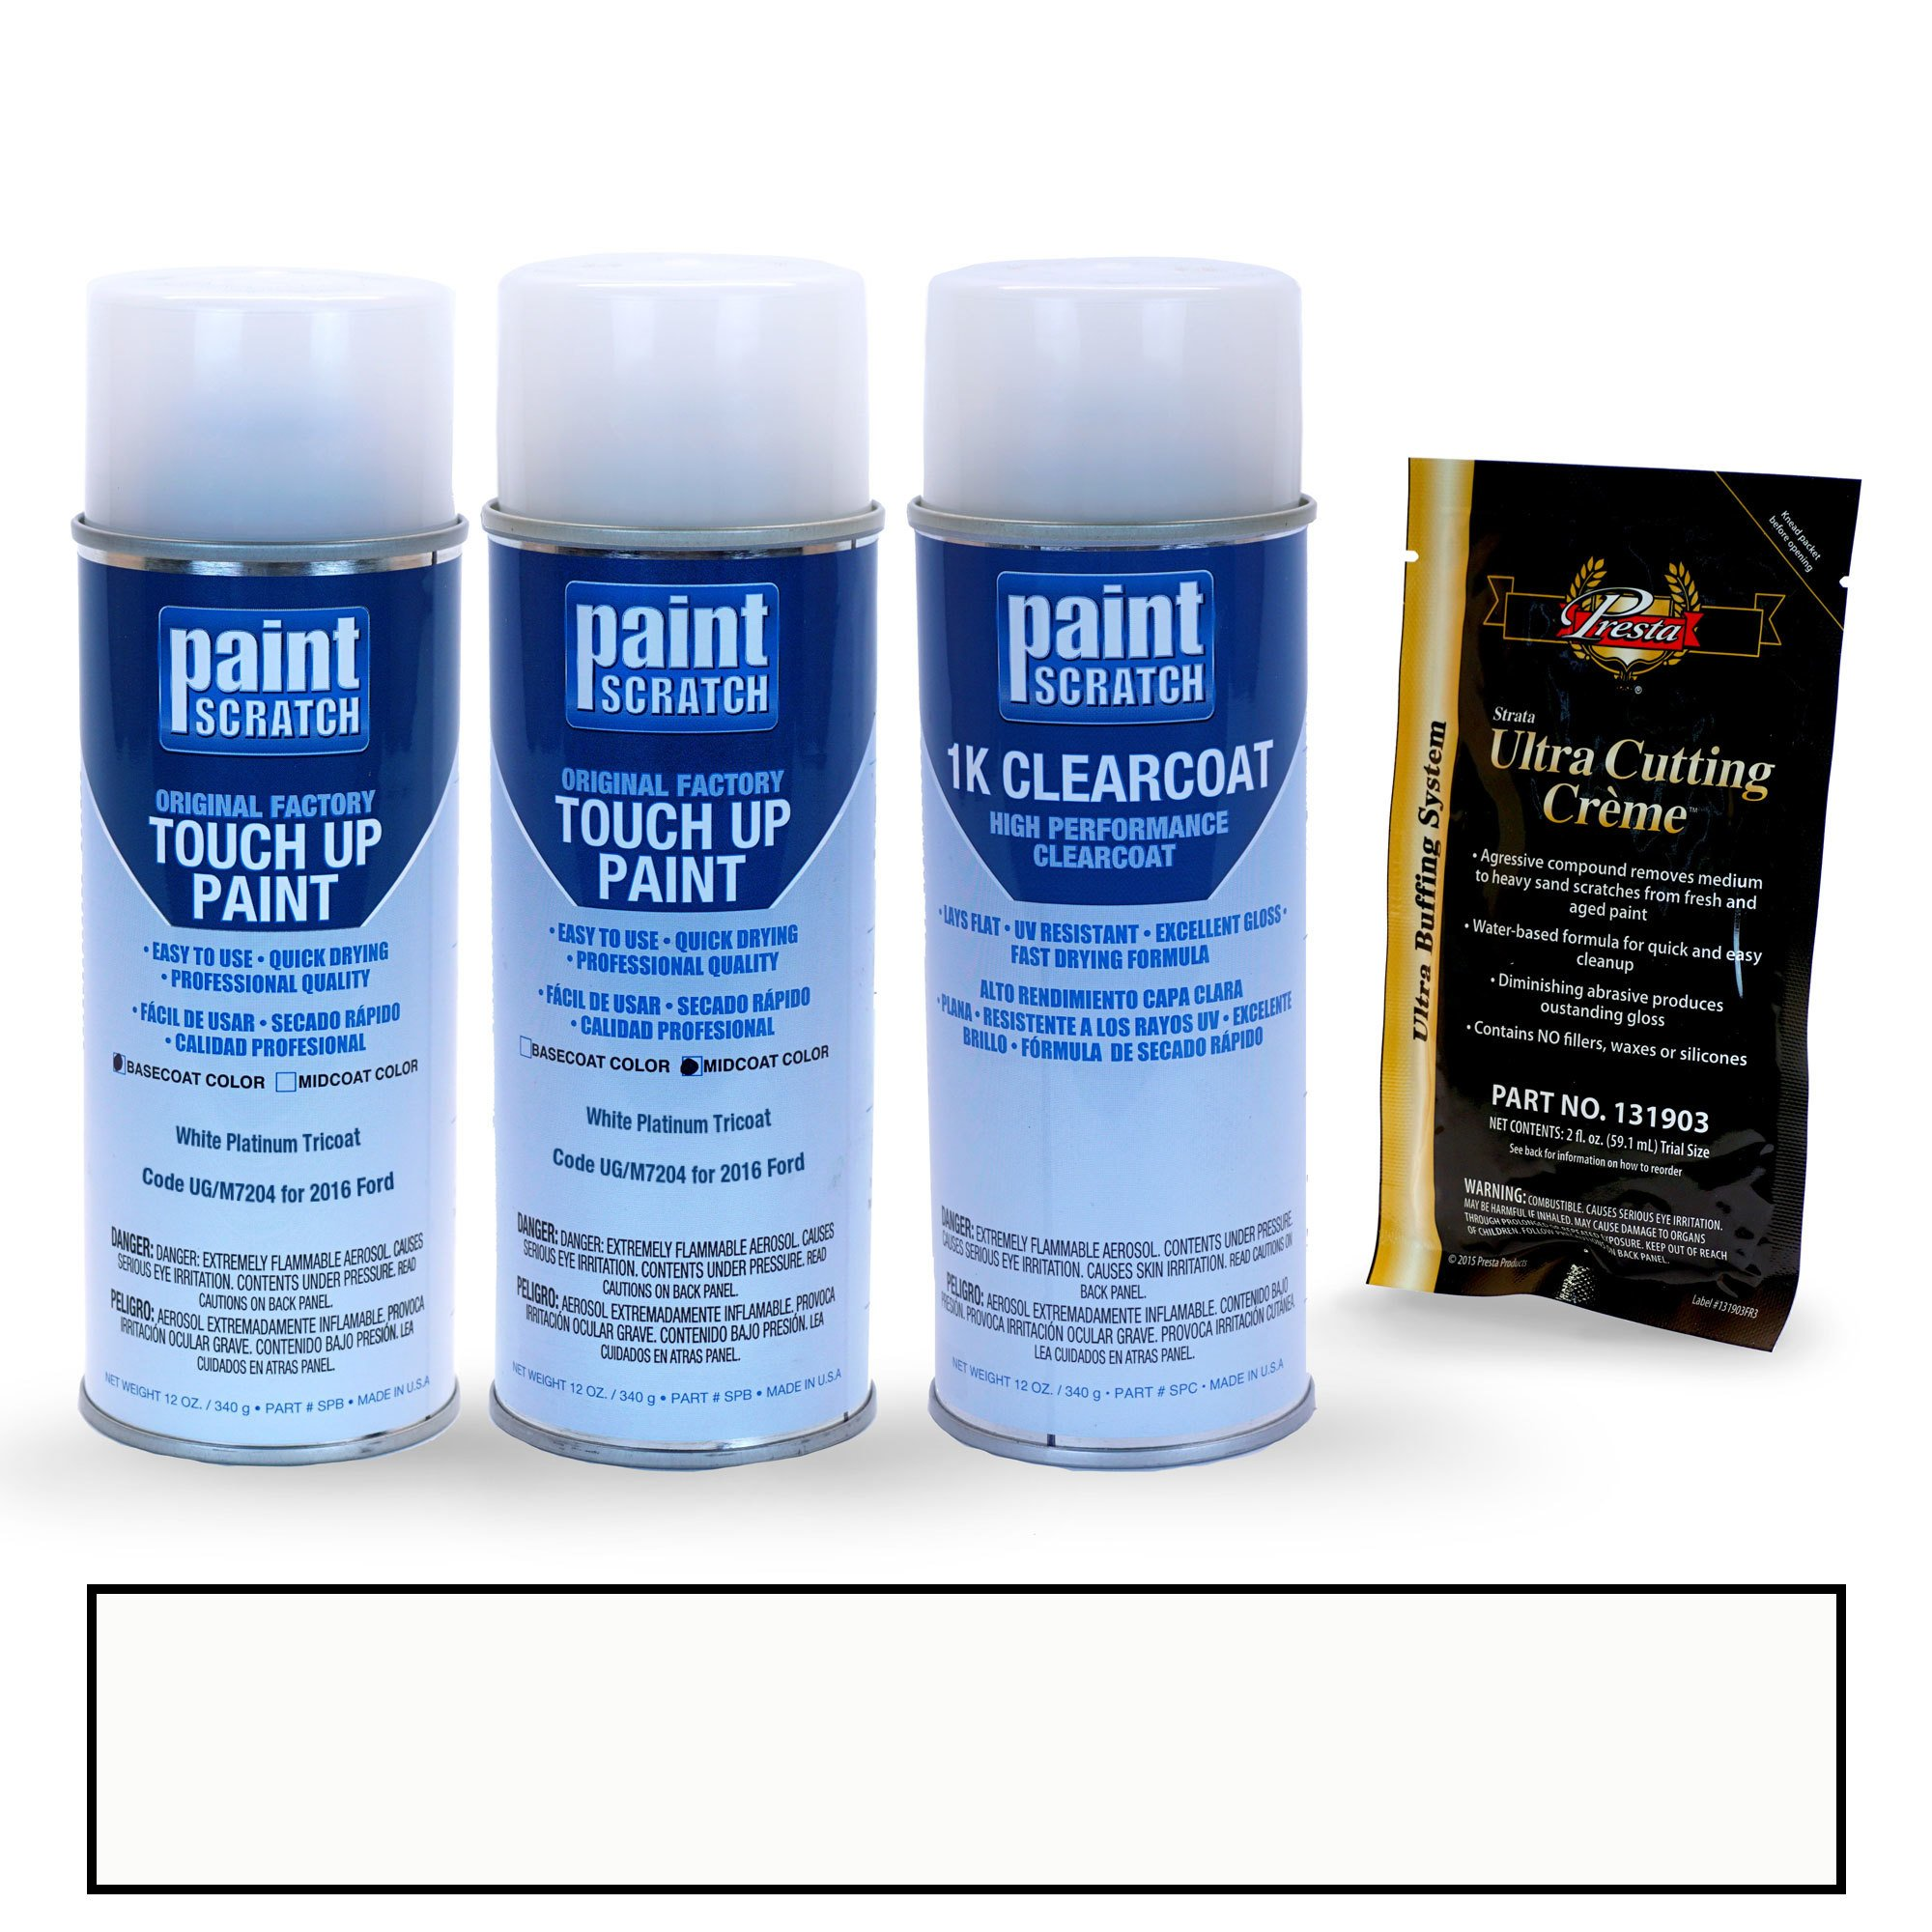 PAINTSCRATCH White Platinum Tricoat UG/M7204 for 2016 Ford F-Series - Touch Up Paint Spray Can Kit - Original Factory OEM Automotive Paint - Color Match Guaranteed